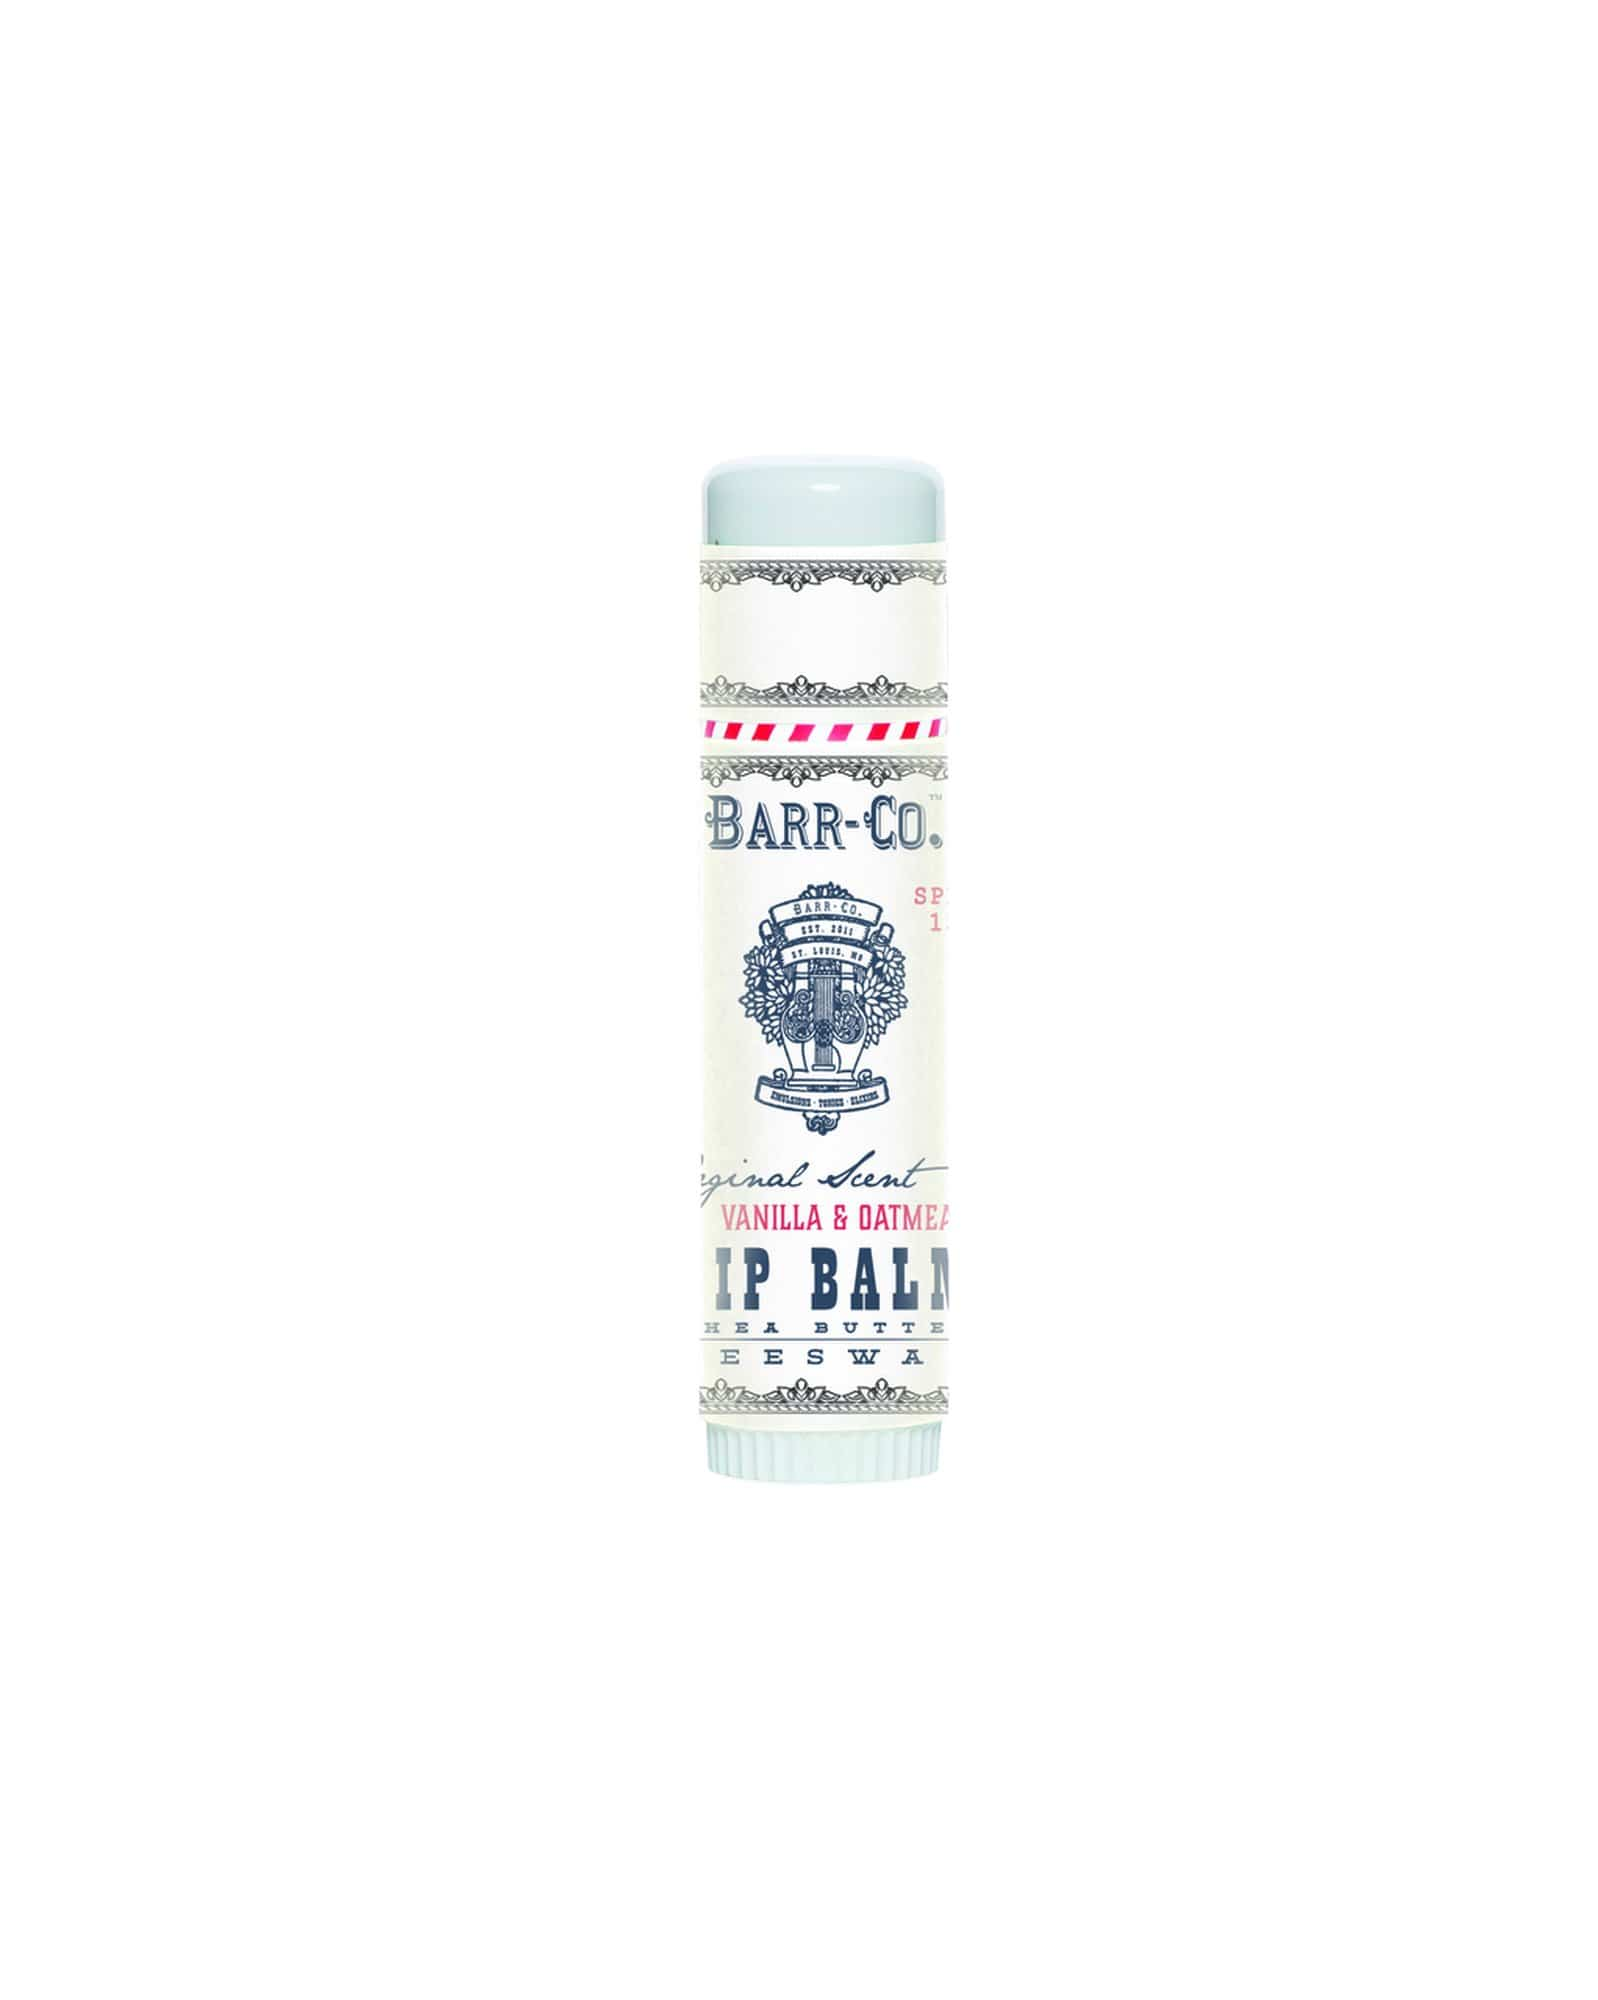 Barr Co. Original Lip Balm K. Hall Designs - Barr Co Bath & Body